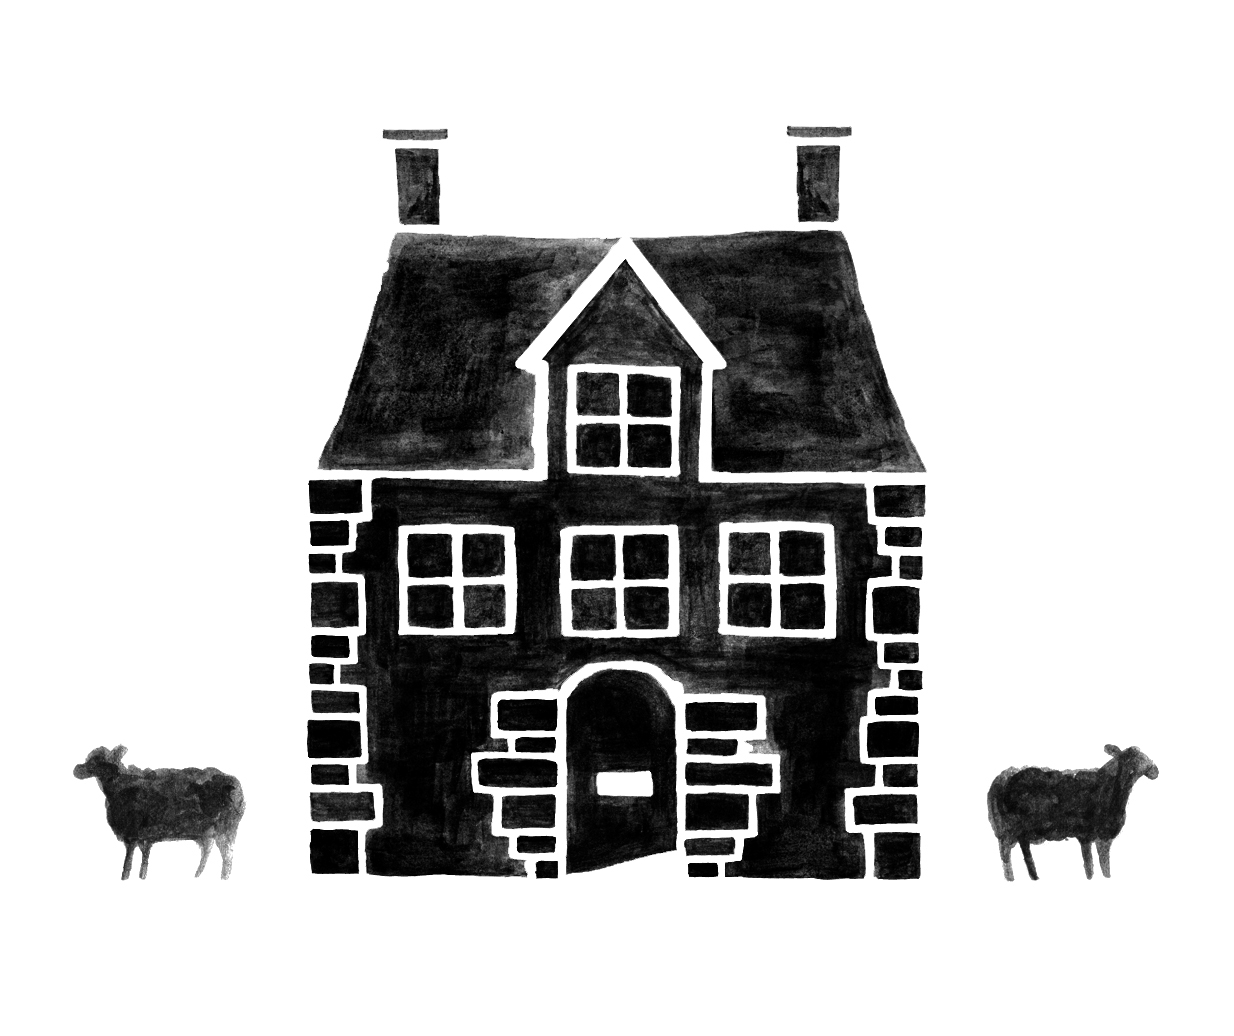 COTSWOLD_PAINTED_LOGO_HOUSE_ONLY.jpg